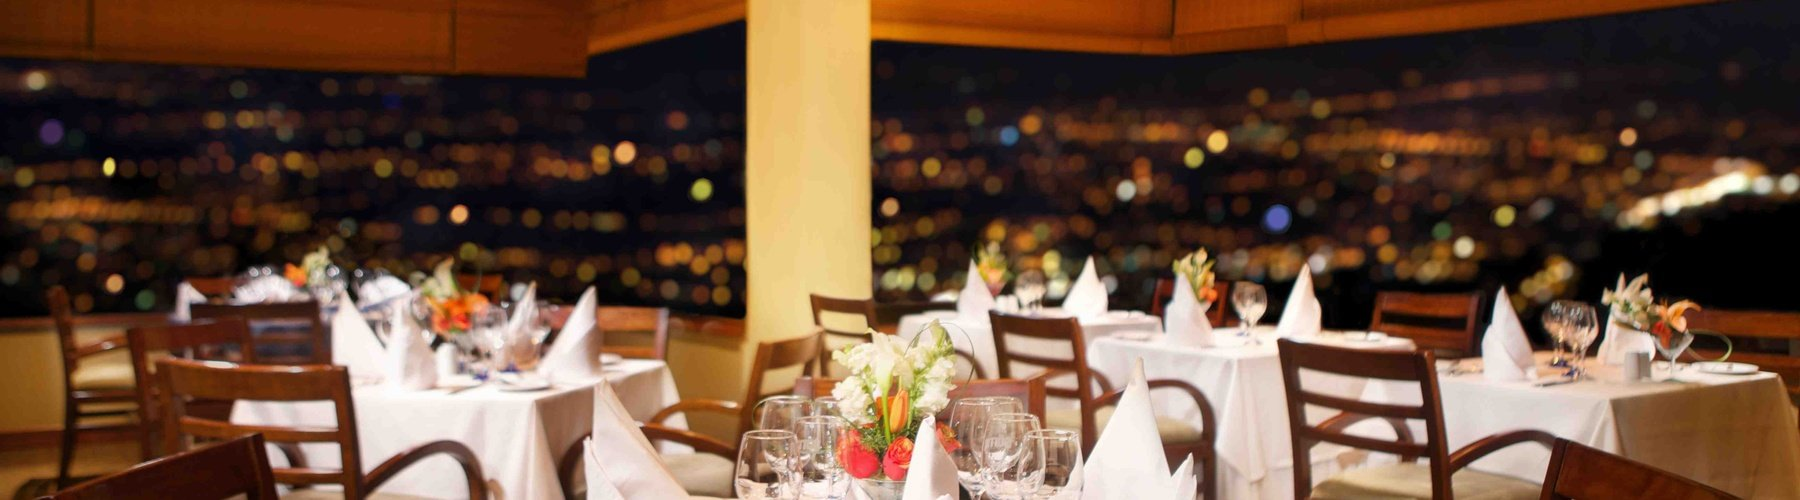 Restaurante - Hotel Quito By Sercotel